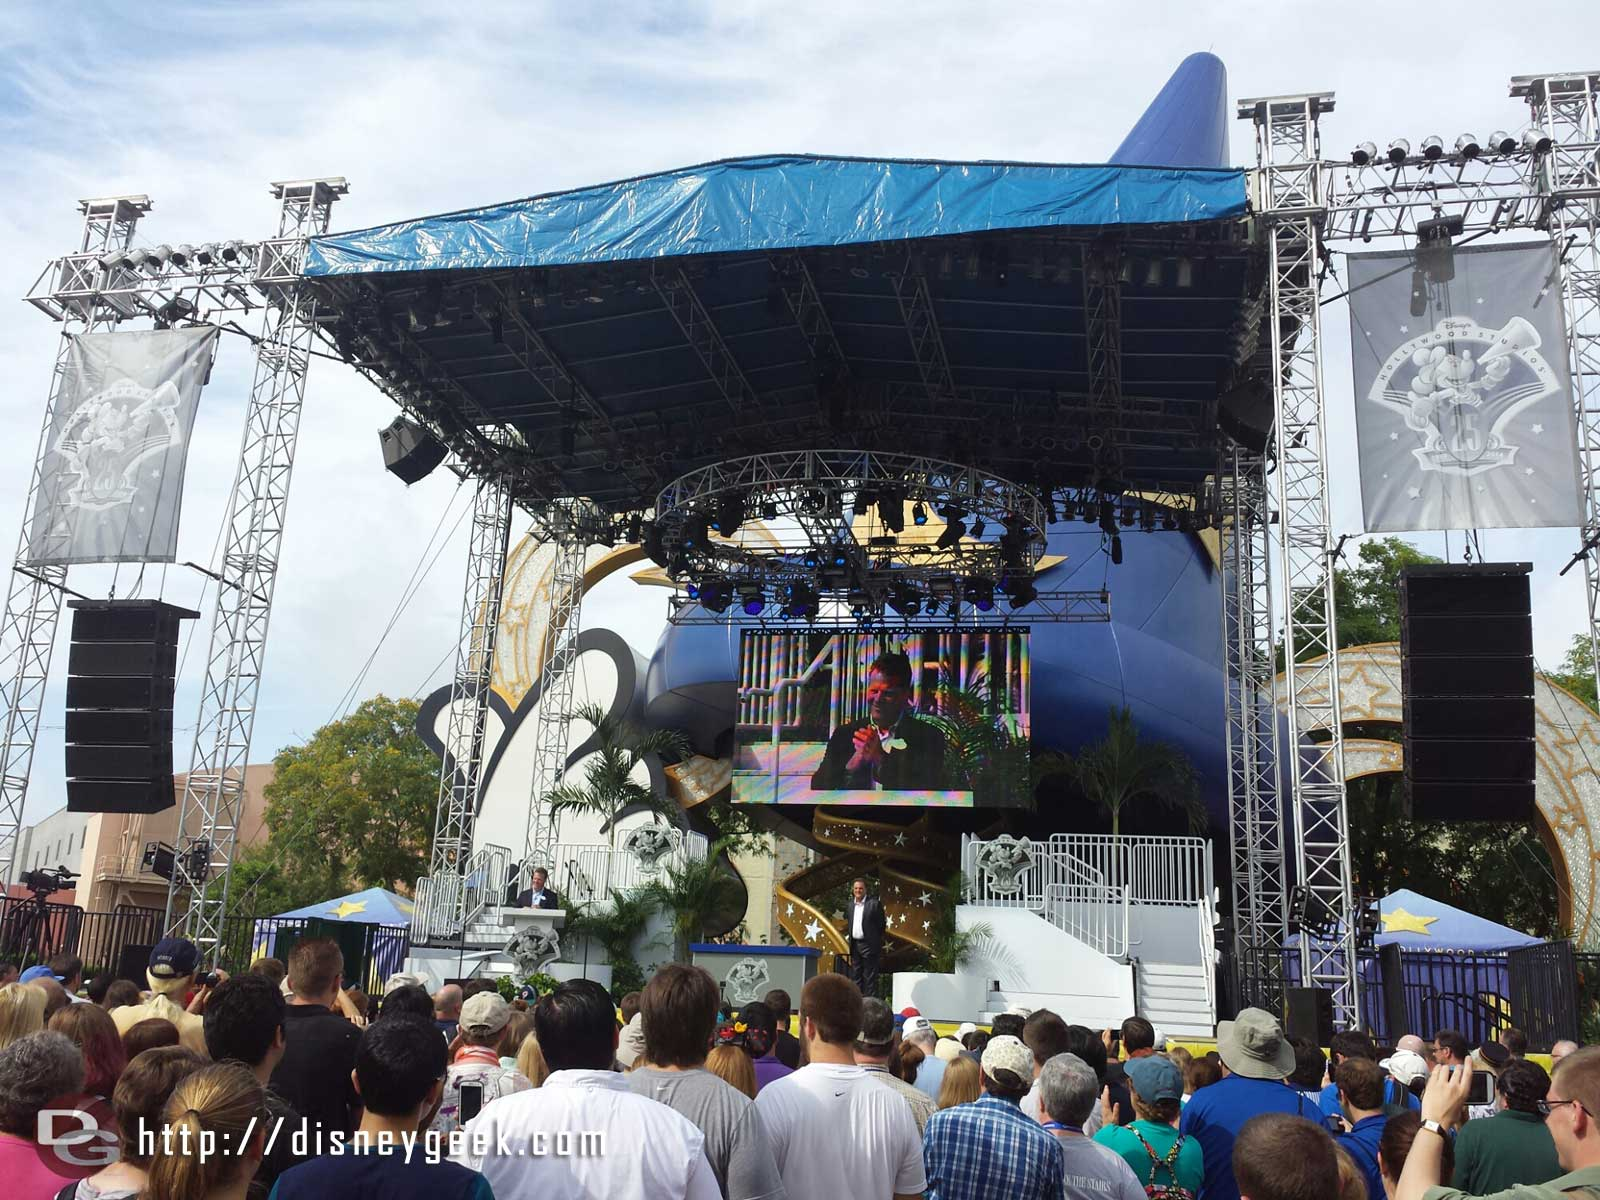 The rededication ceremony started at 10am – Disney's Hollywood Studios